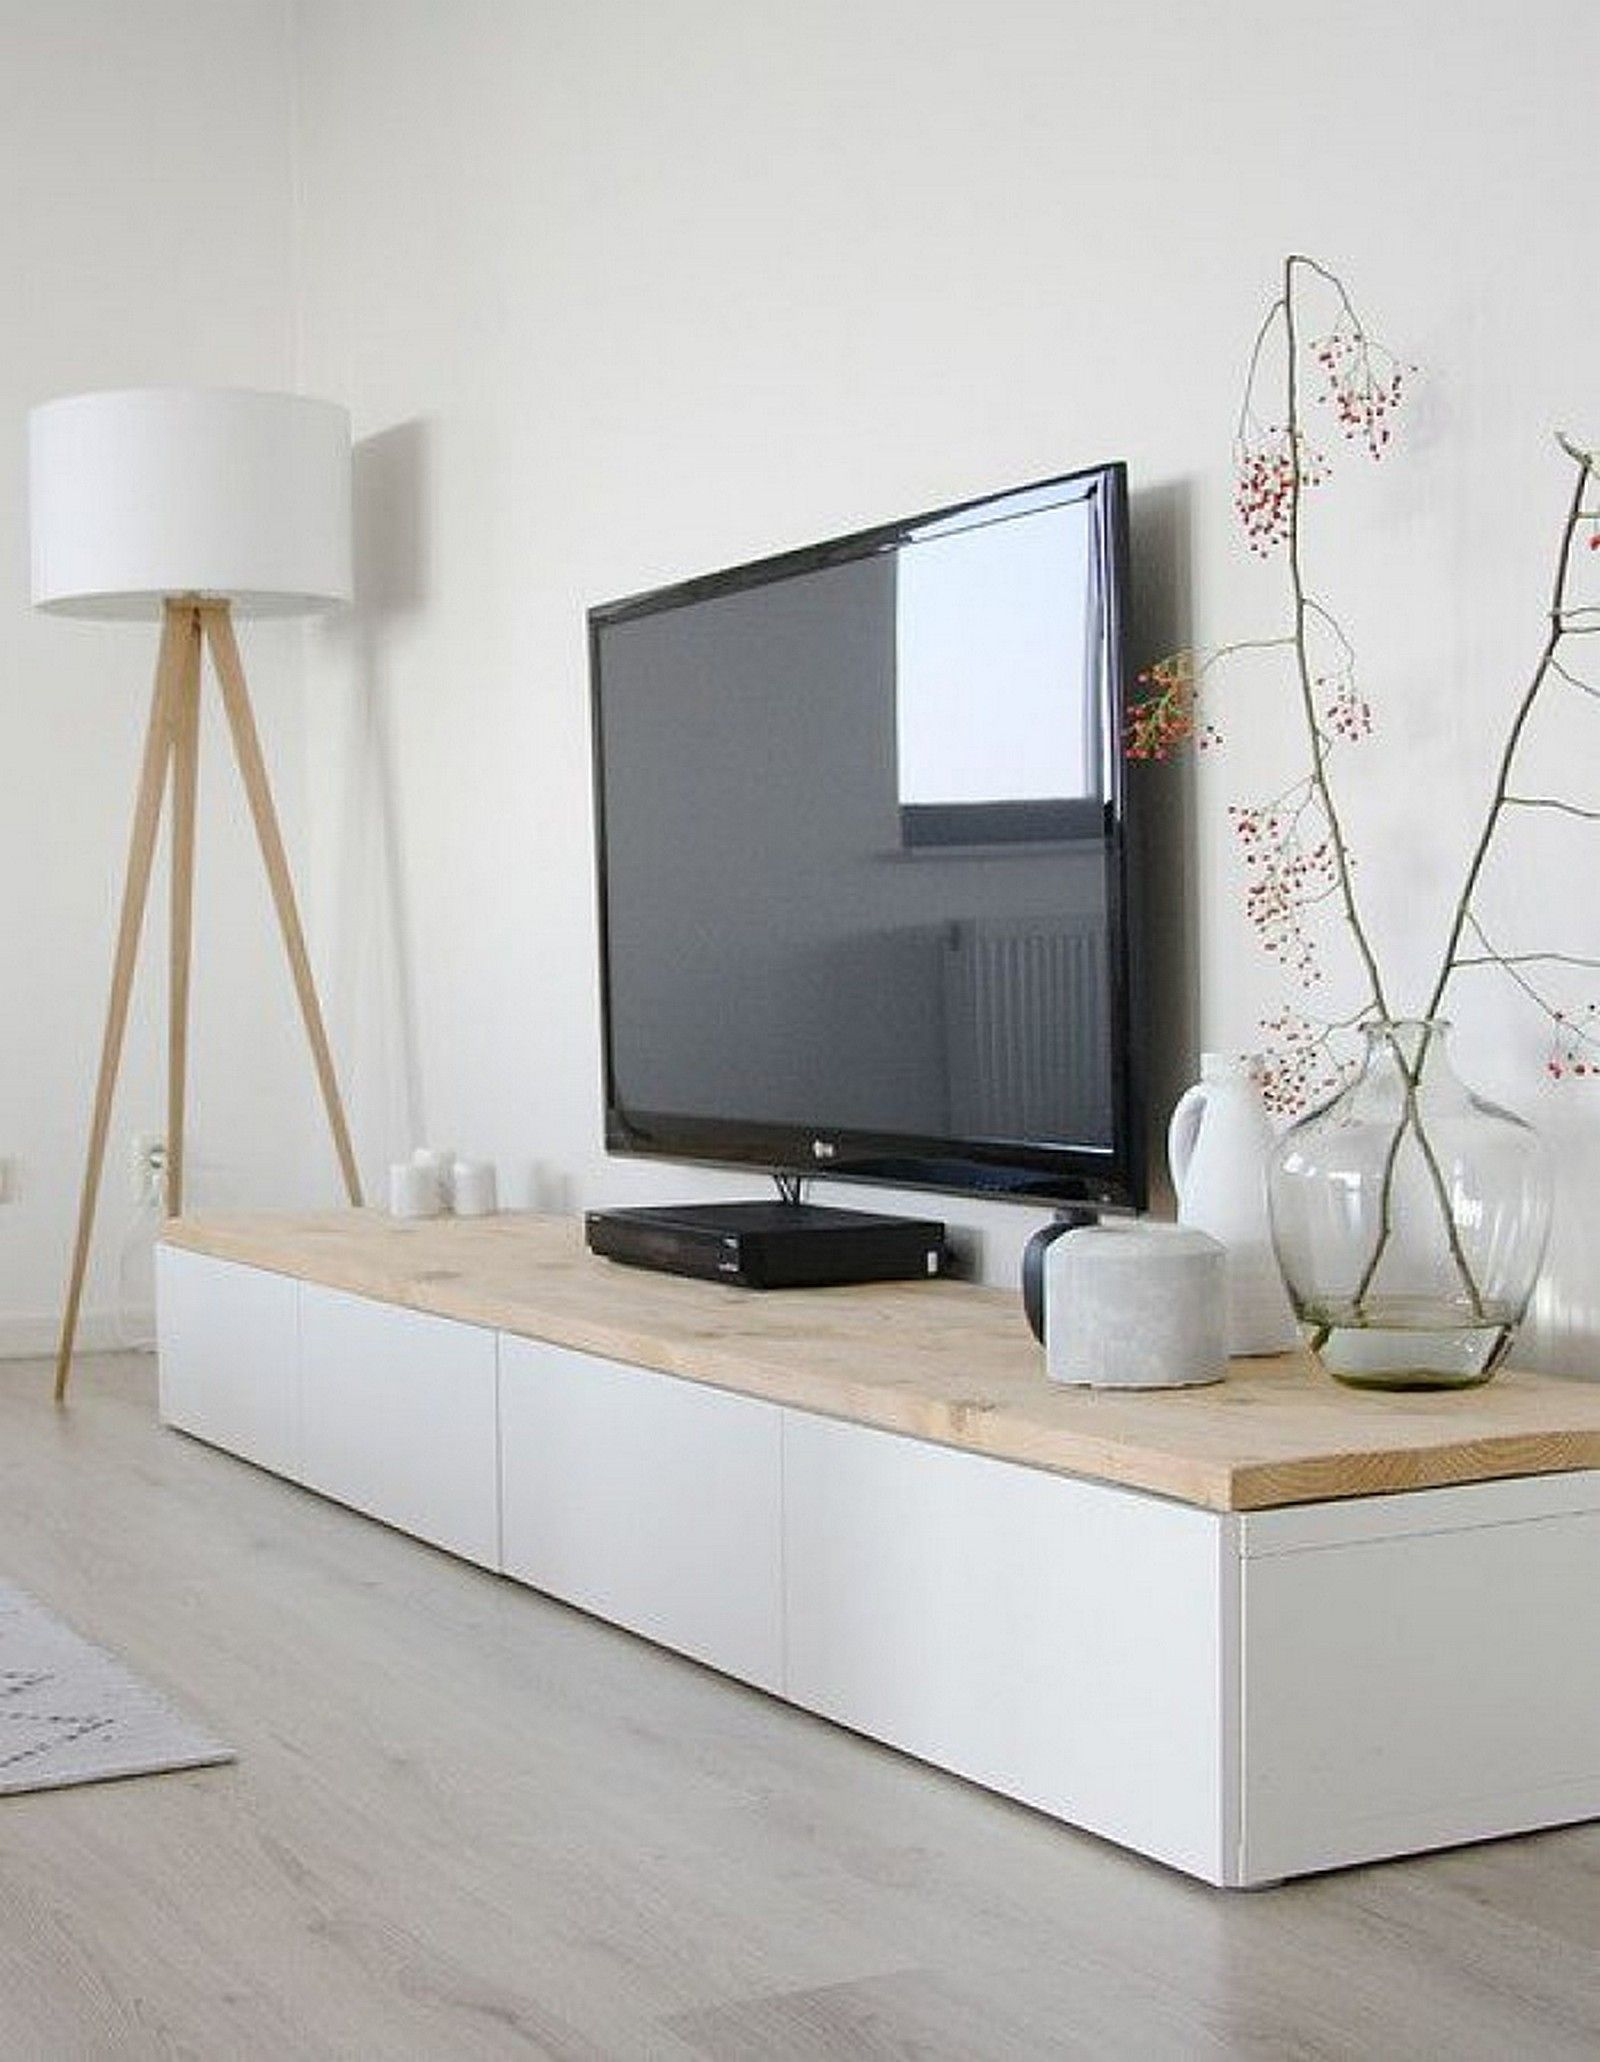 Wohnwand ikea besta  White Living Room features IKEA Besta TV unit with large TV onit ...